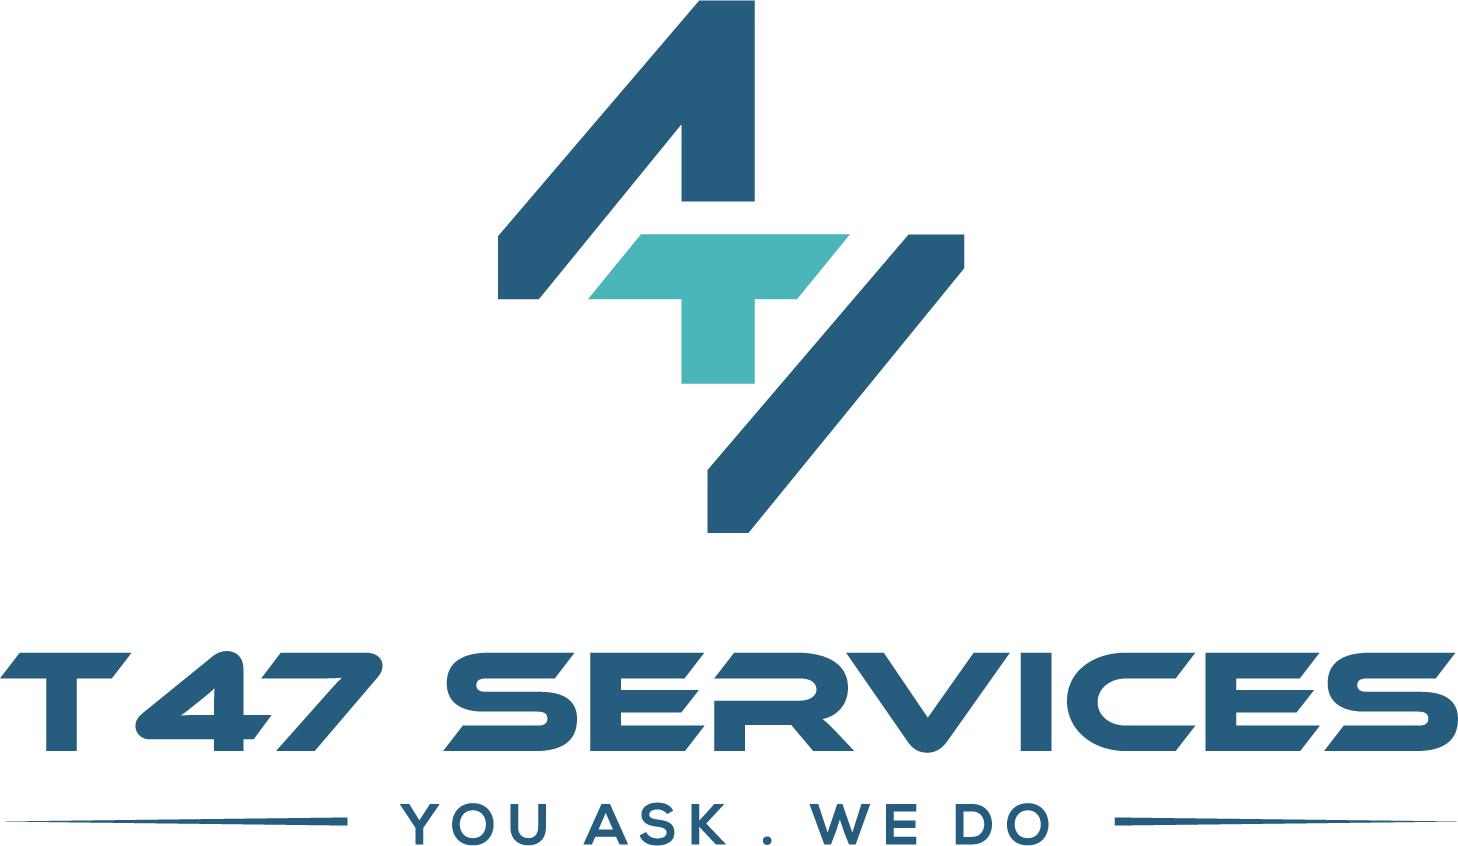 T47 Cleaning services logo